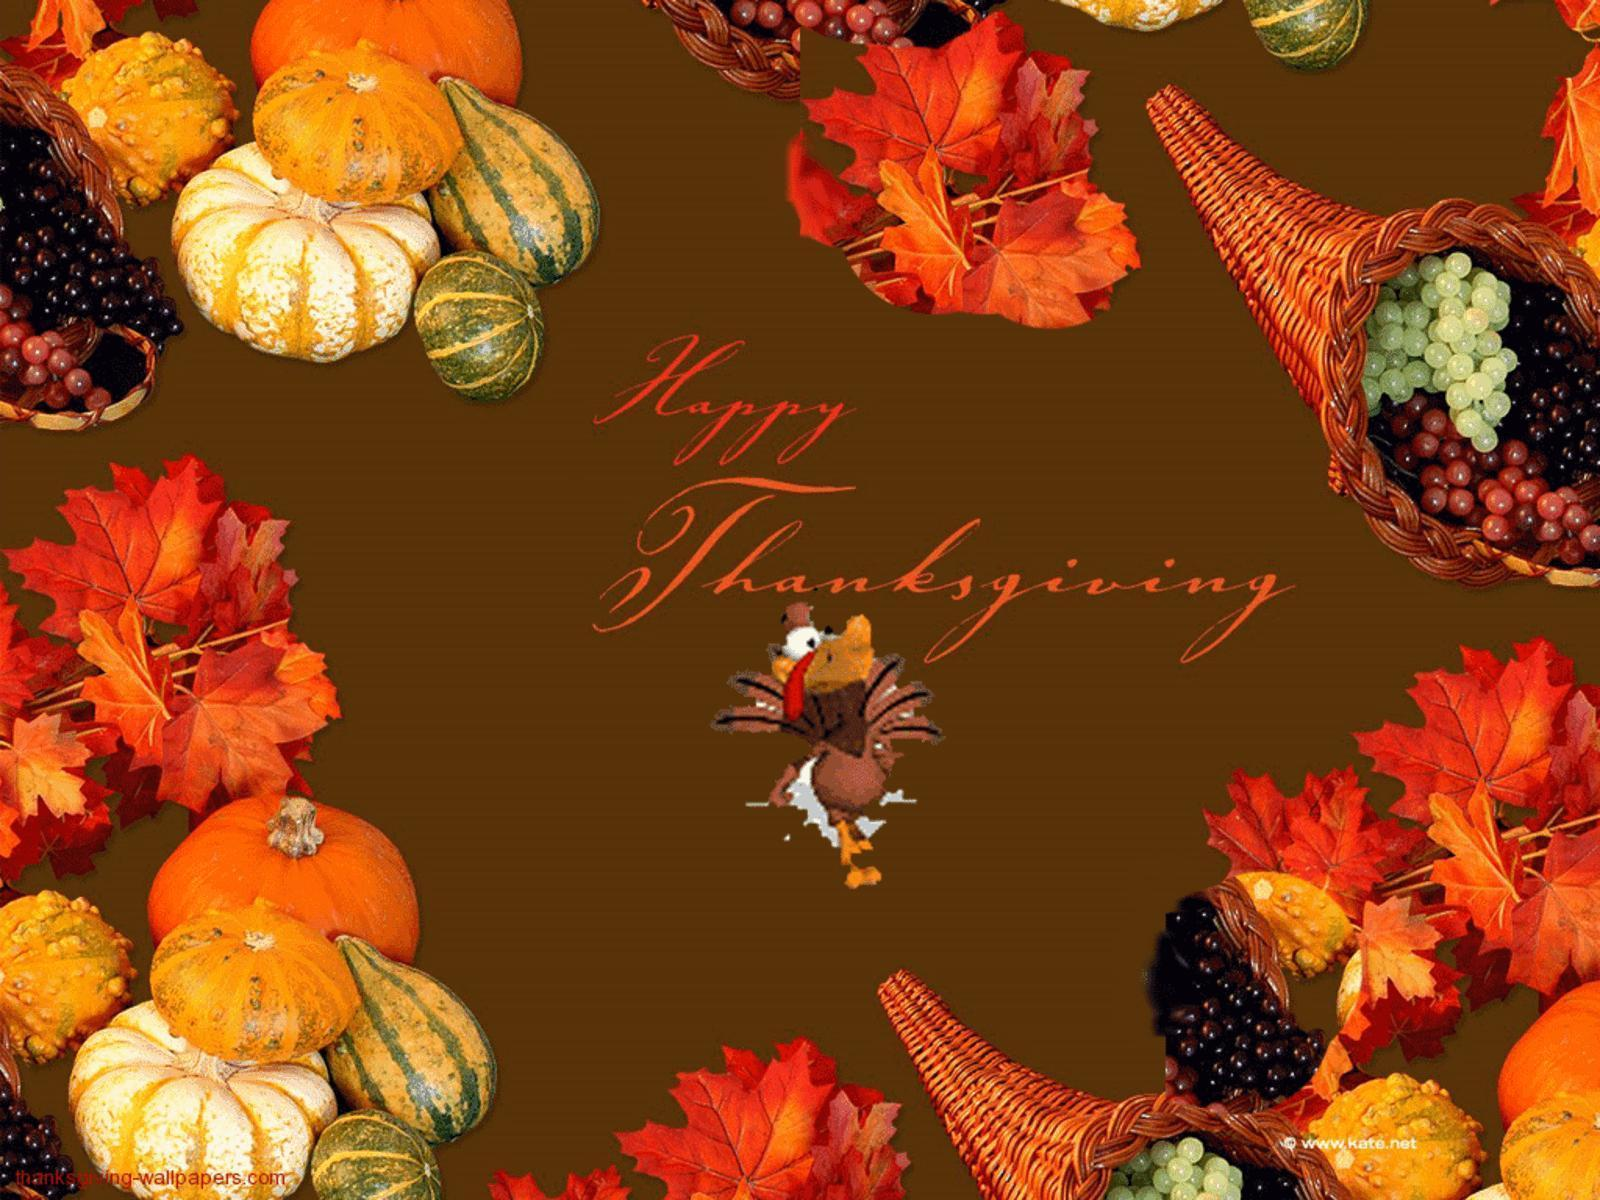 Free Desktop Wallpapers Thanksgiving 35635 Wallpapers